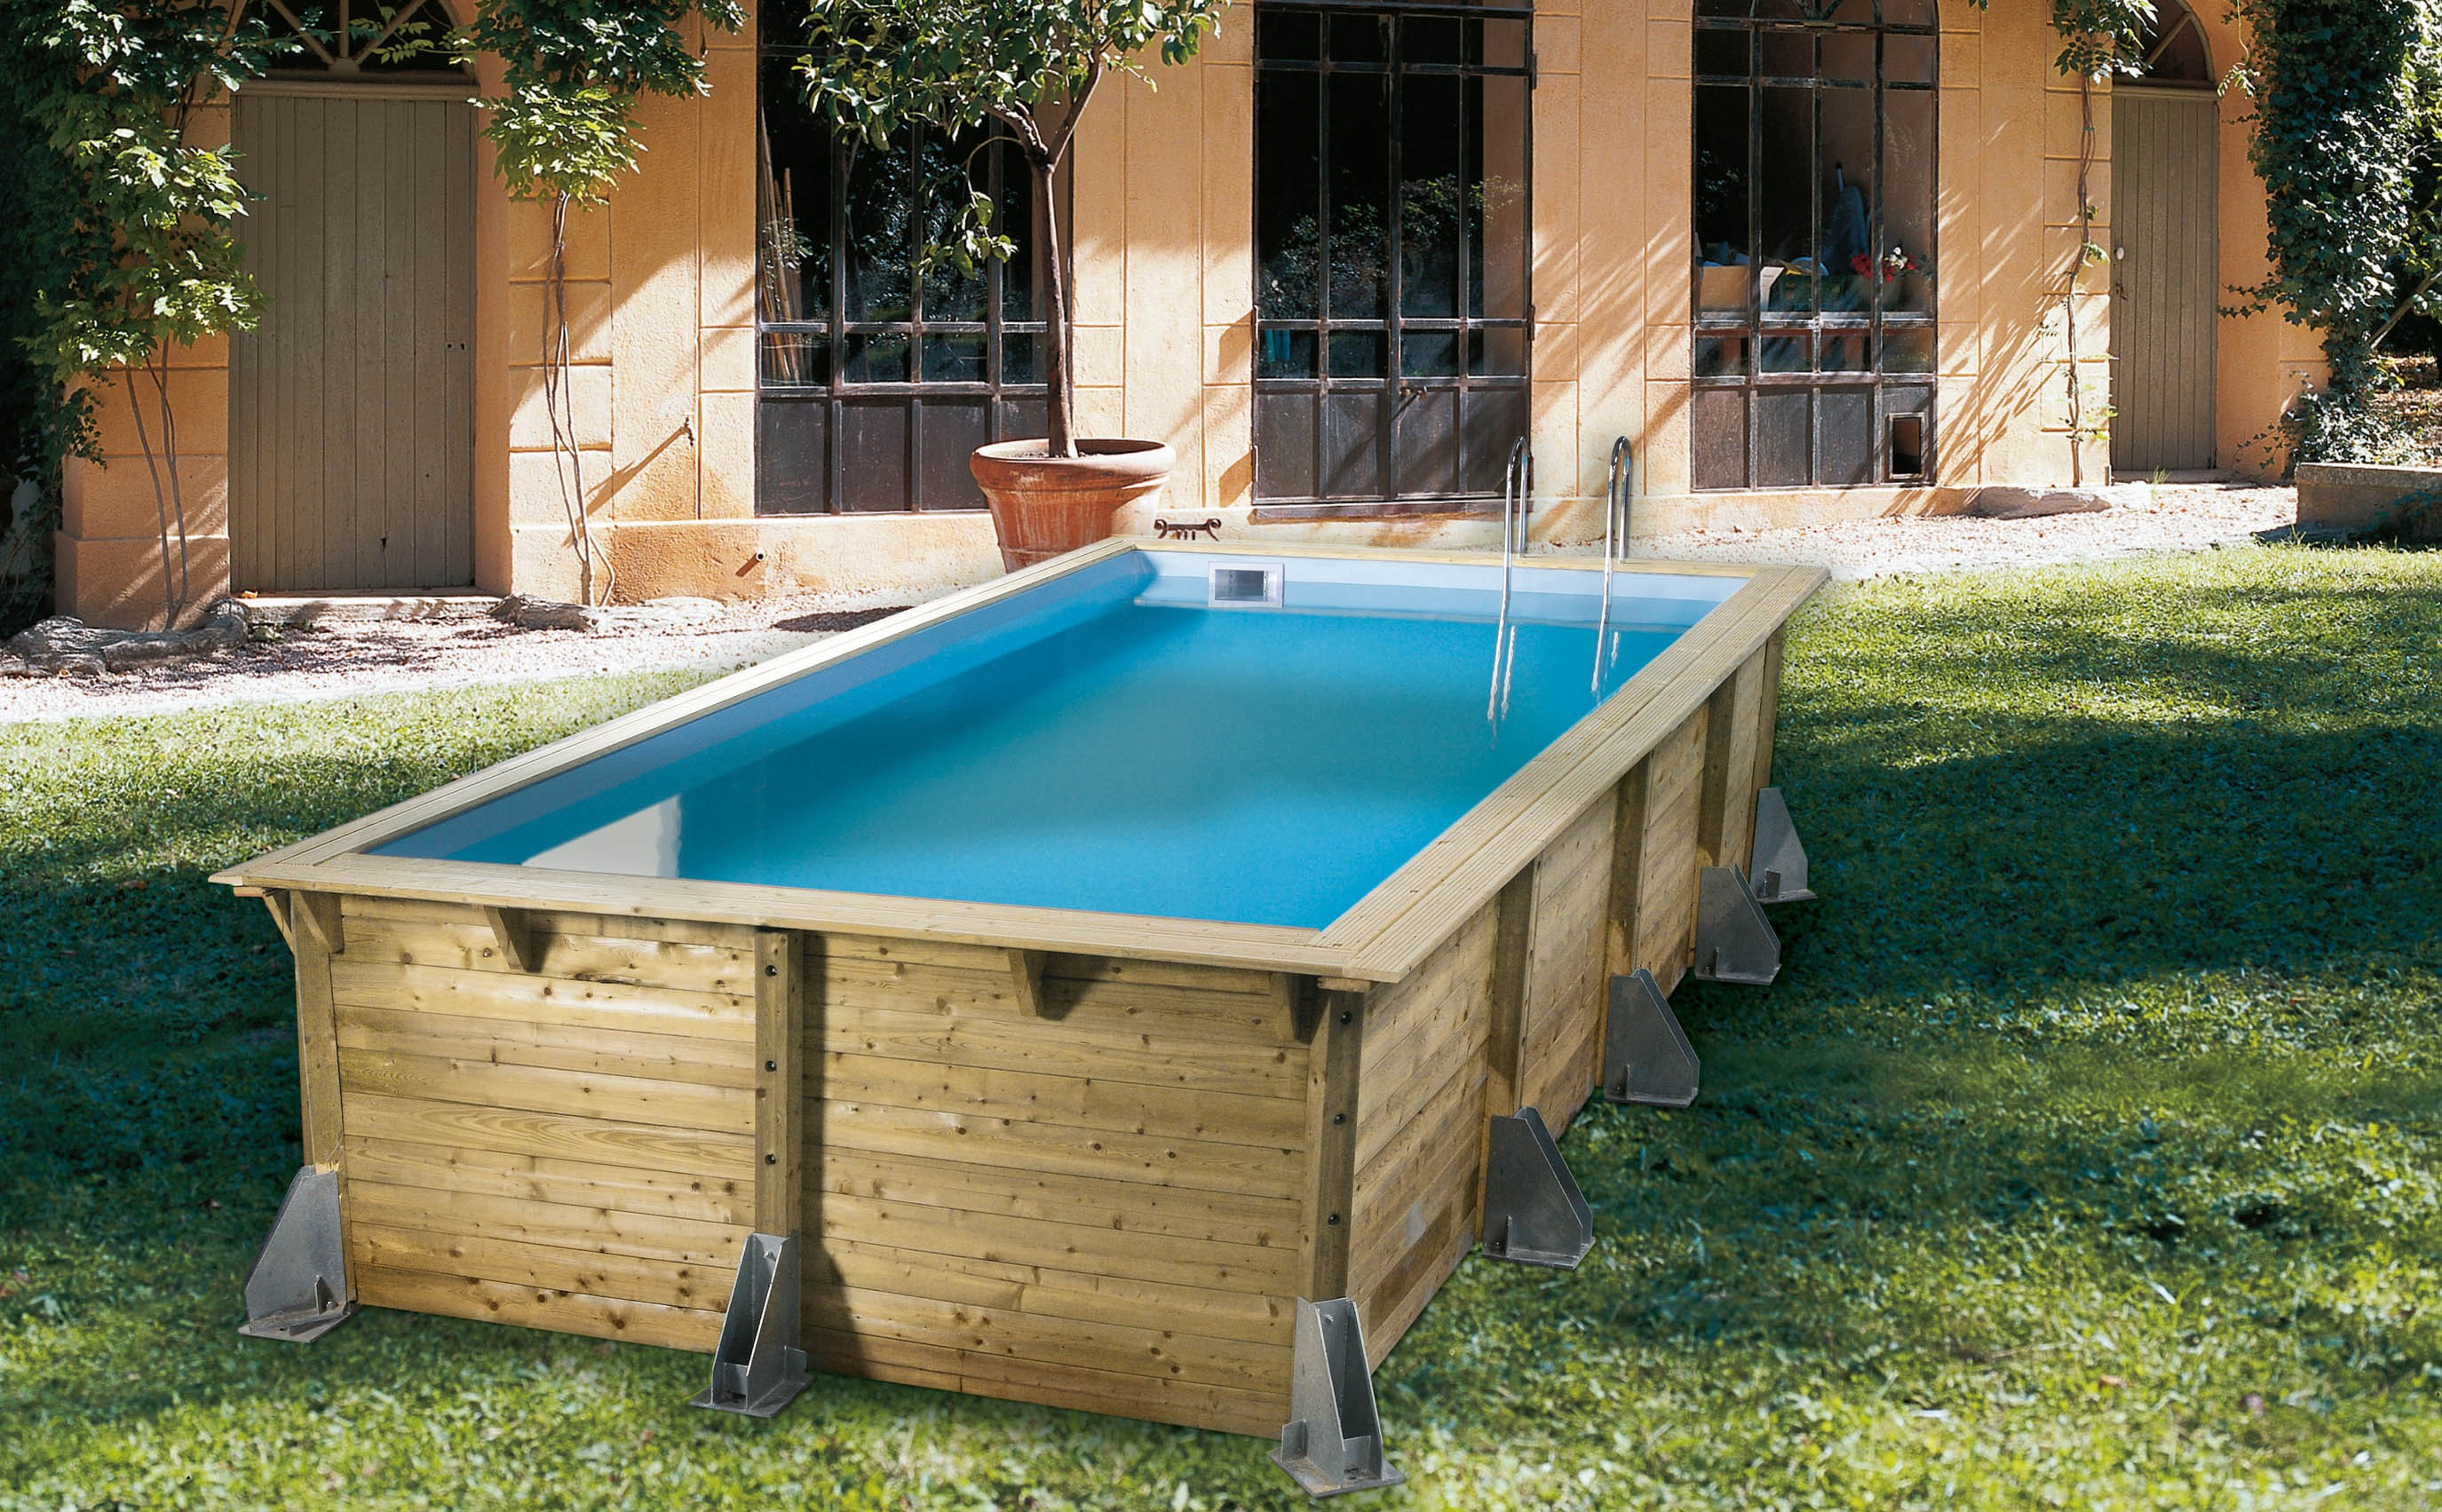 Azura rectangulaire ubbink northland piscine bois for Piscine demontable bois